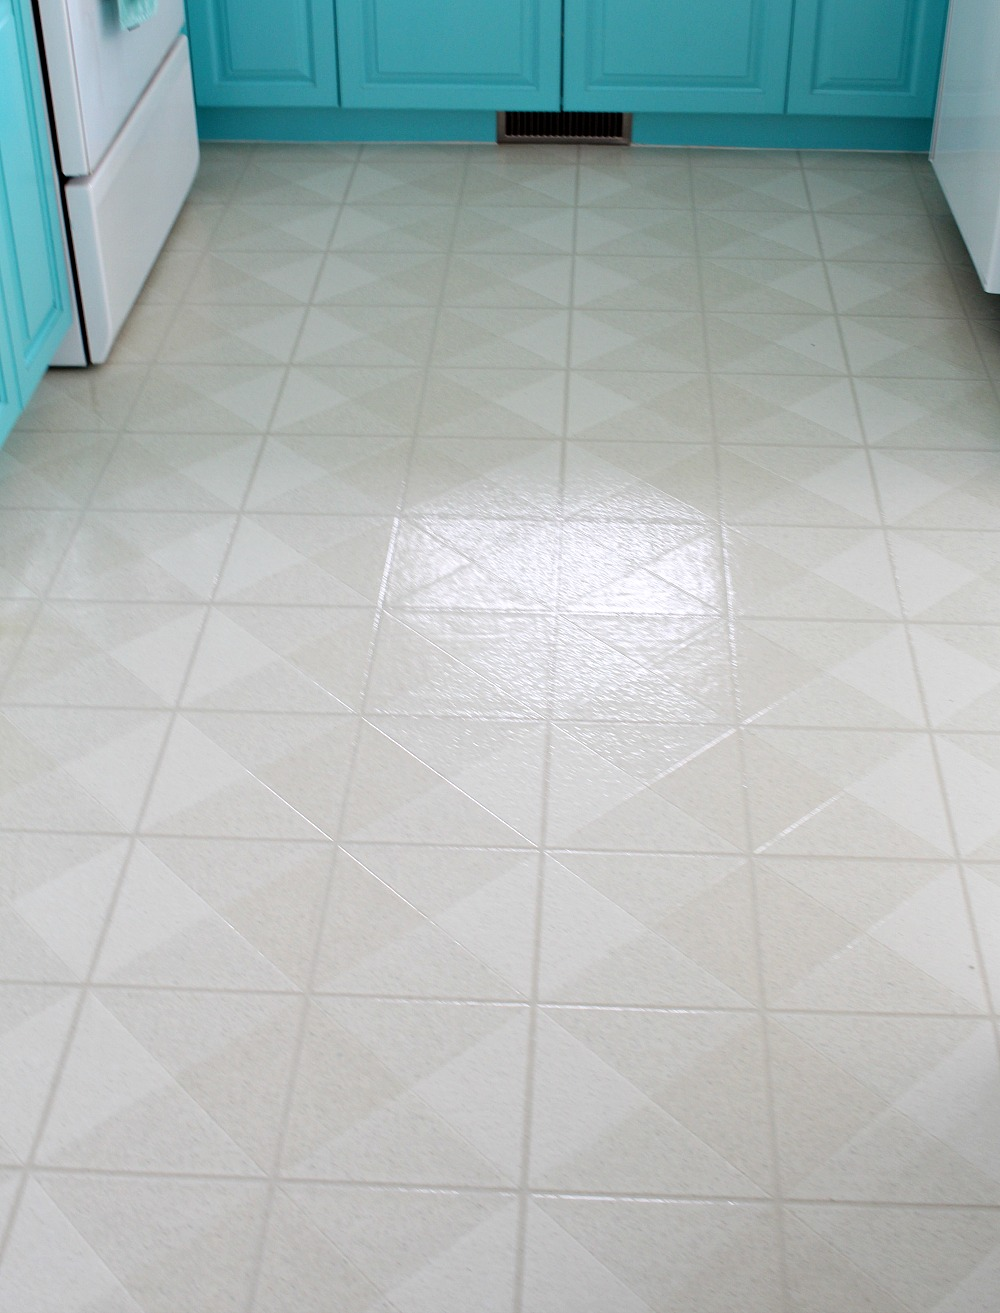 Painted floor tiles the suitable home design for Painting vinyl floor tile